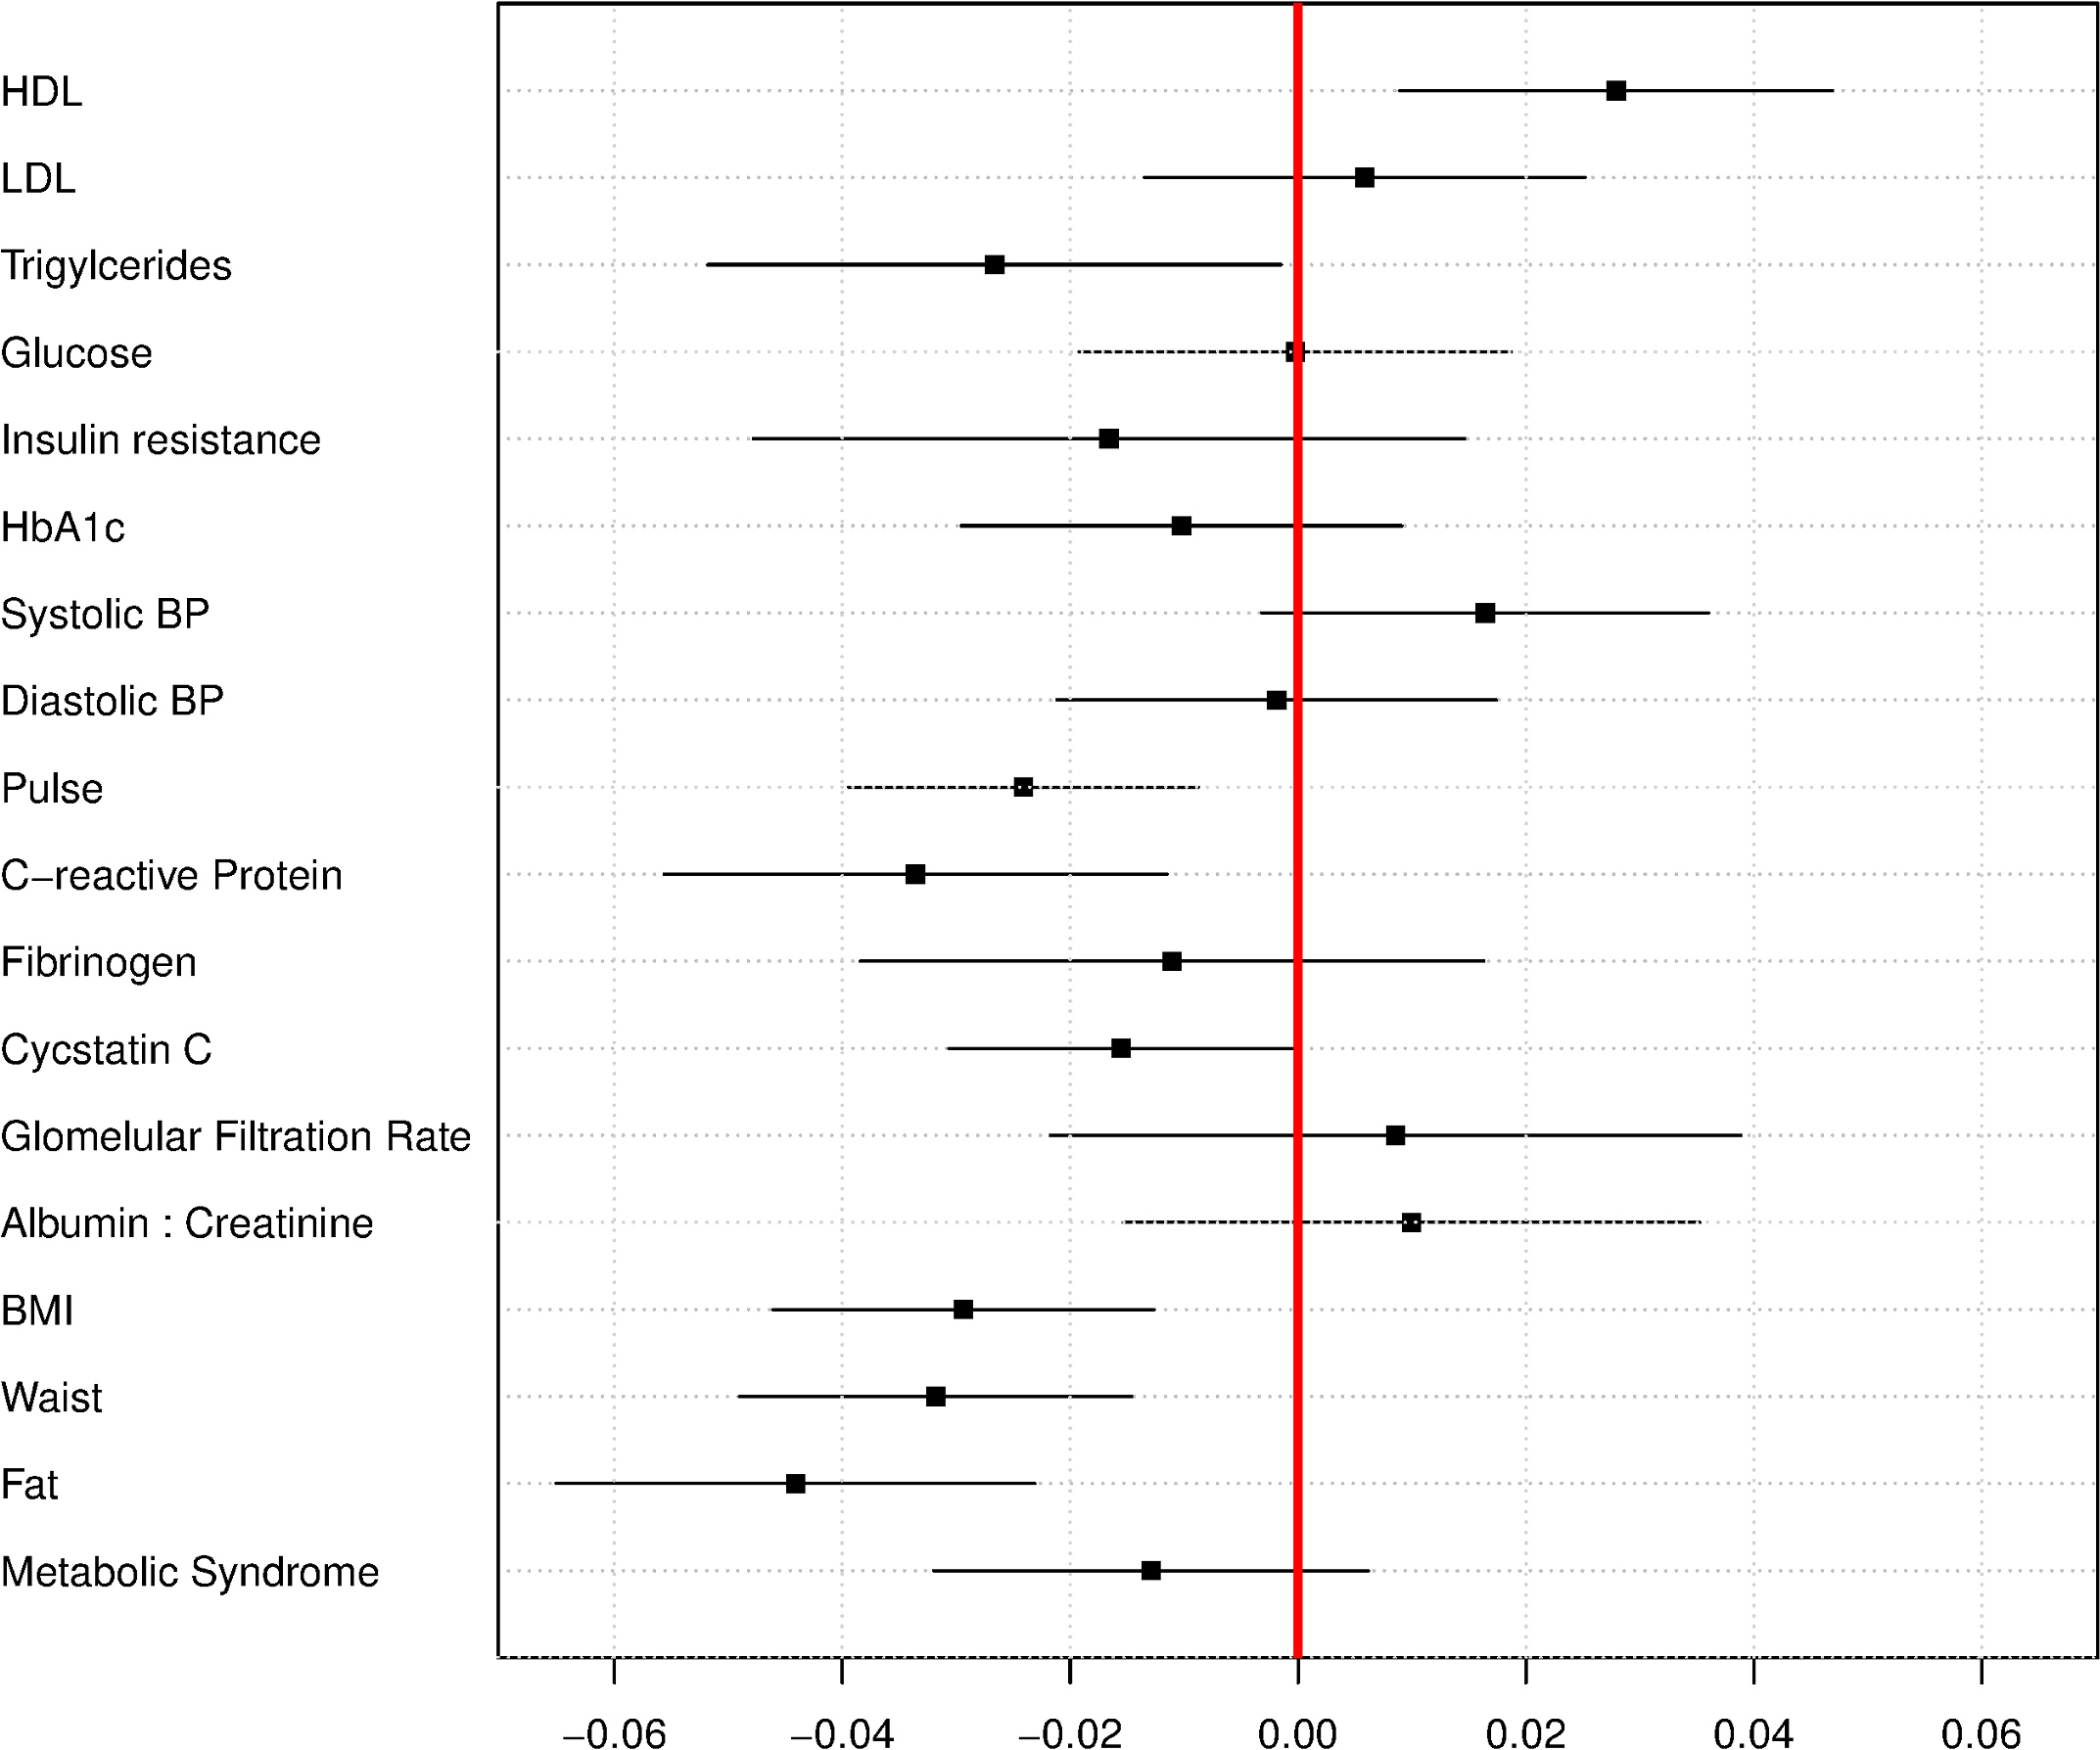 Regression coefficients for relationship between biomarkers and LTL, in standard deviations of biomarker per kb of LTL, ages 20–84, NHANES 1999–2002.